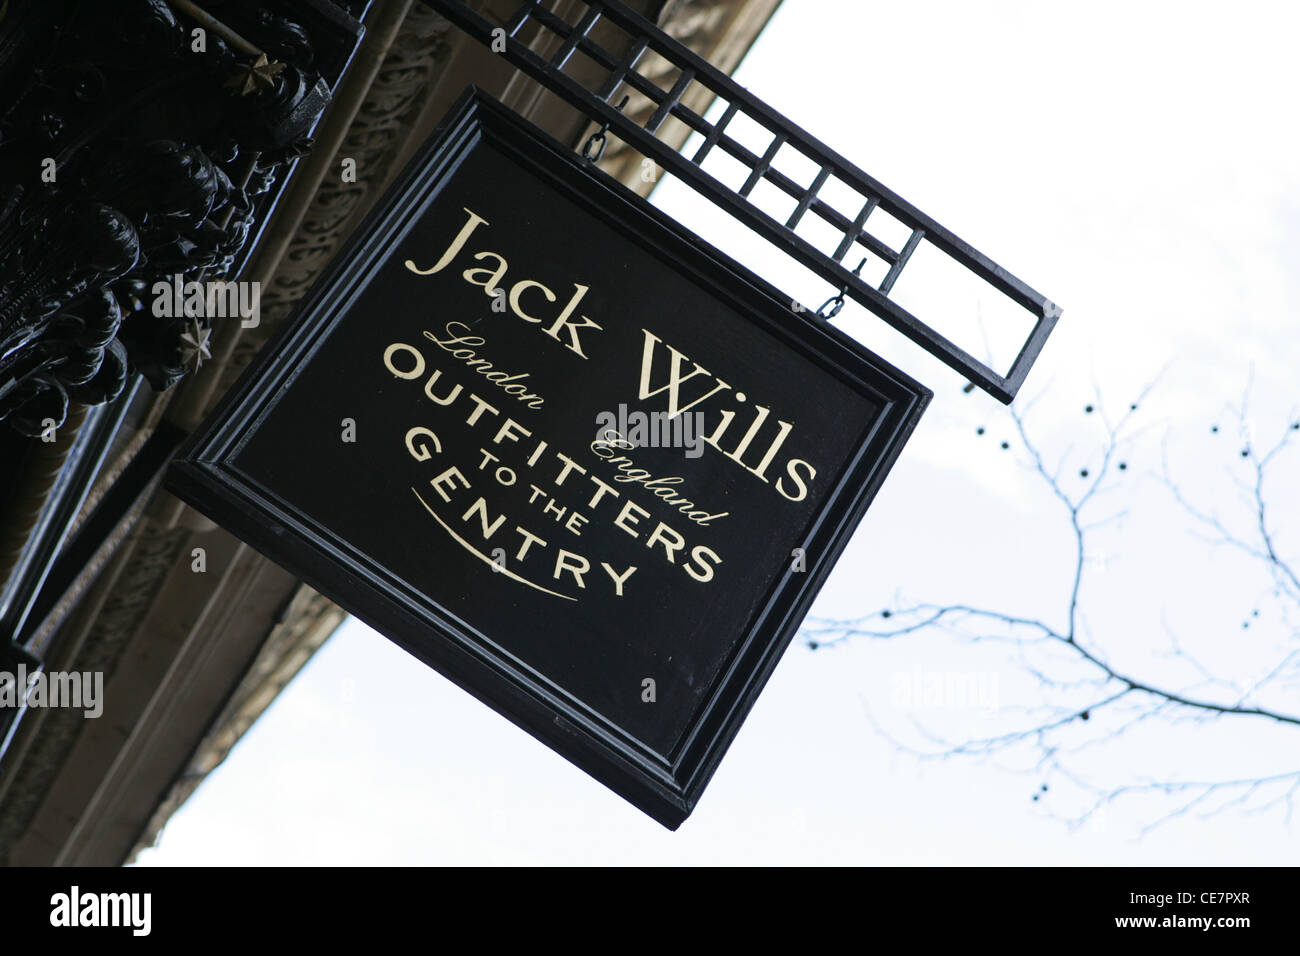 jack wills outfitters store birmingham uk - Stock Image